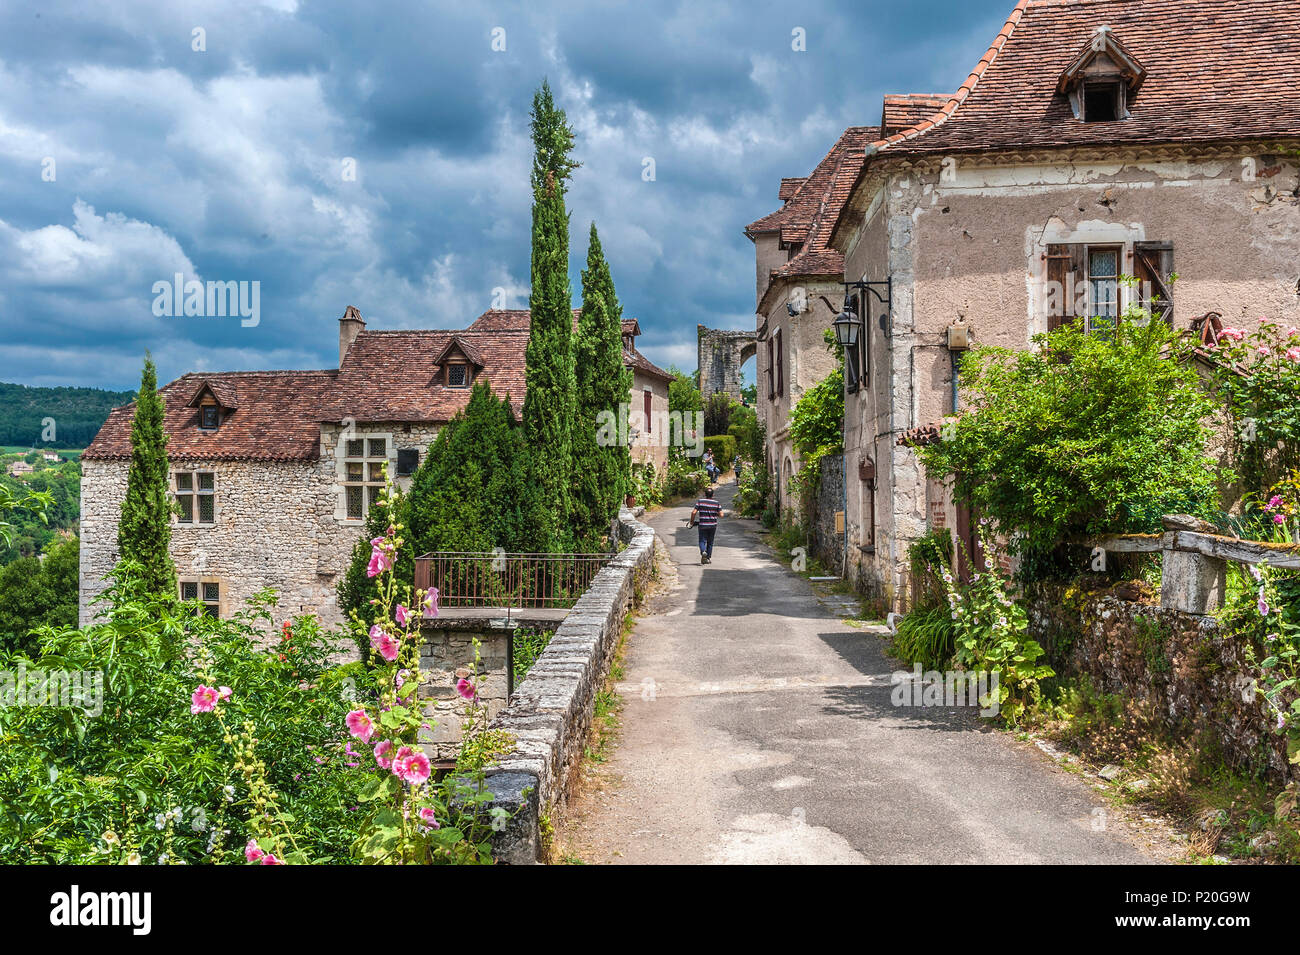 France, Lot, Causses du Quercy regional natural park, St Cirq-Lapopie, labelled 'Most Beautiful Village in France' - Stock Image